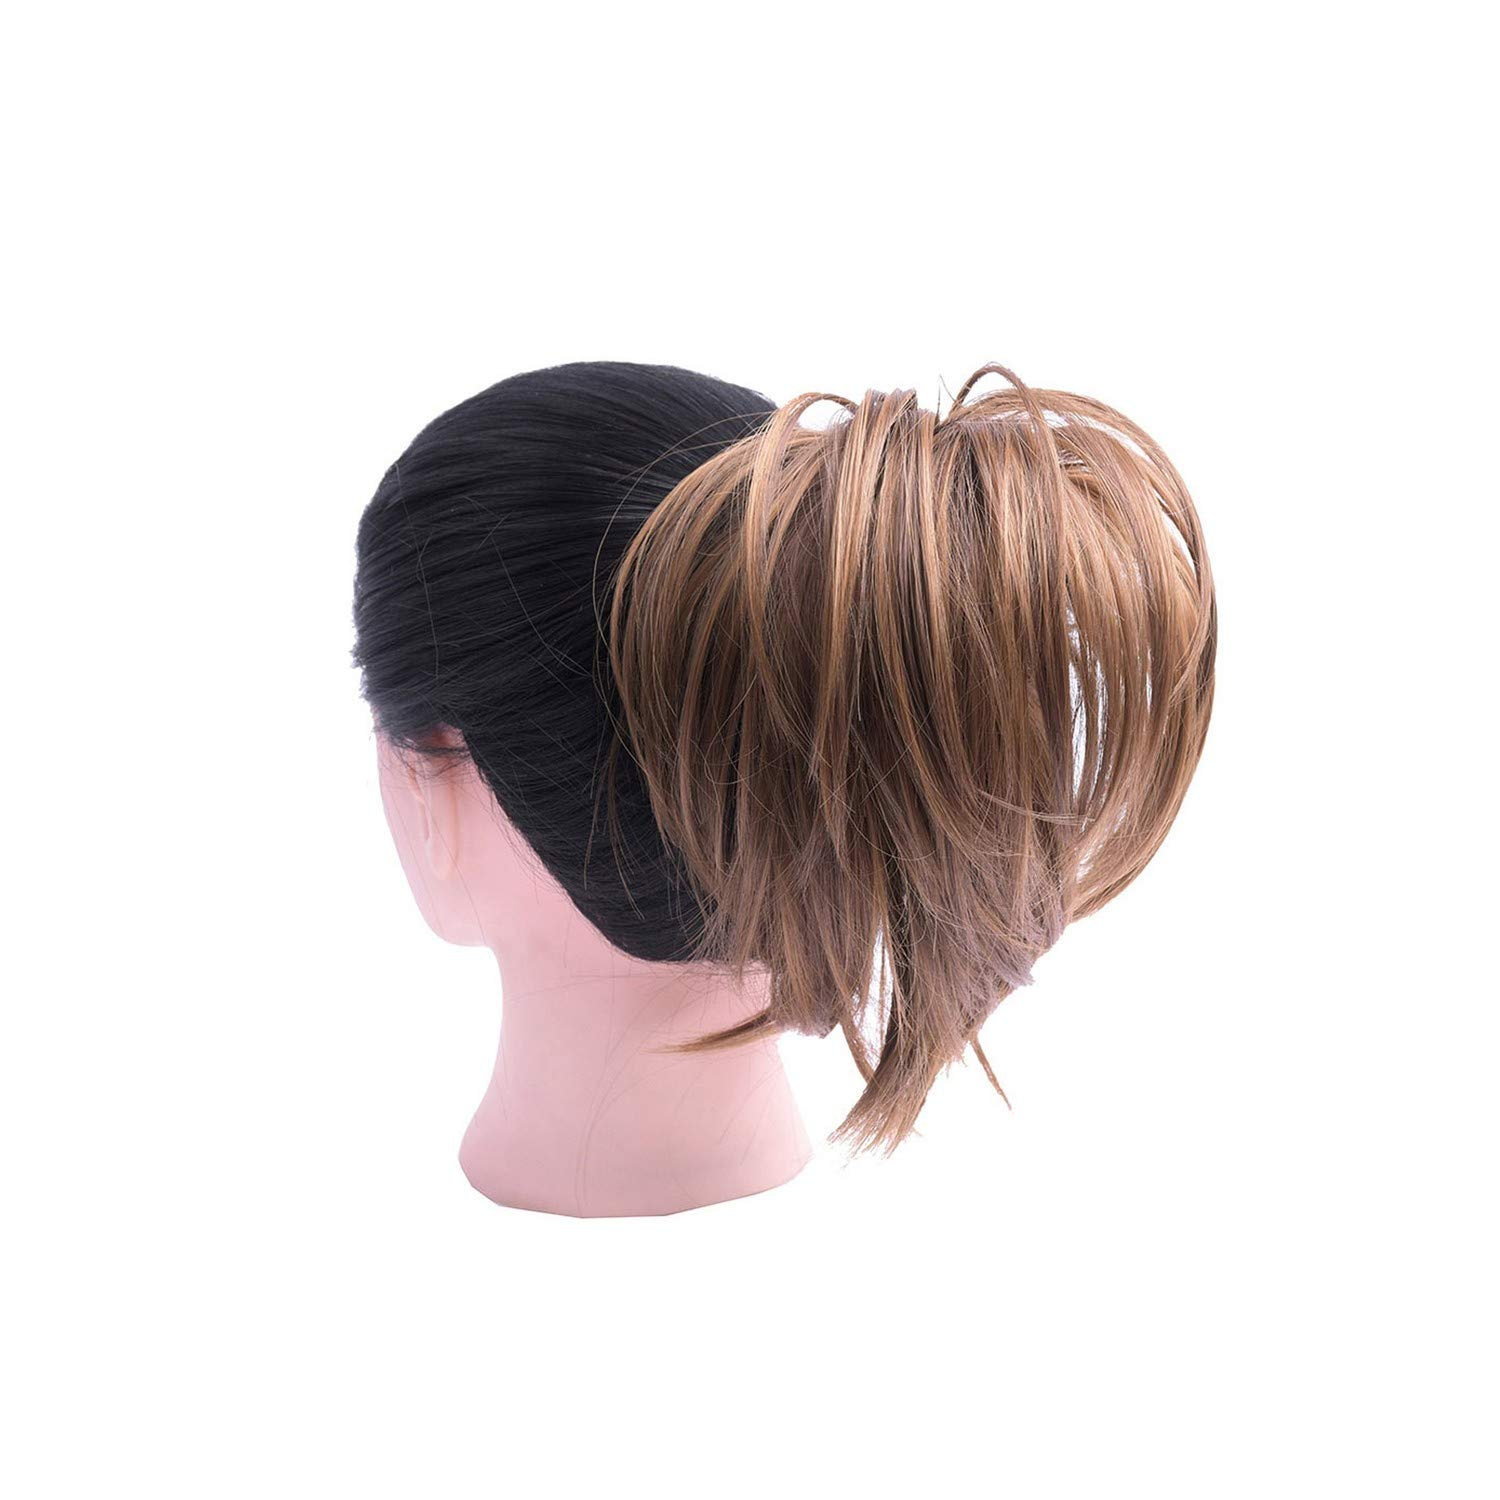 Synthetic Tousled Flexible Hair Bun Straight Donut Chignon Elastic Messy Scrunchies Wrap Ponytail Extension Women,10H27 by Rosing-wig caps